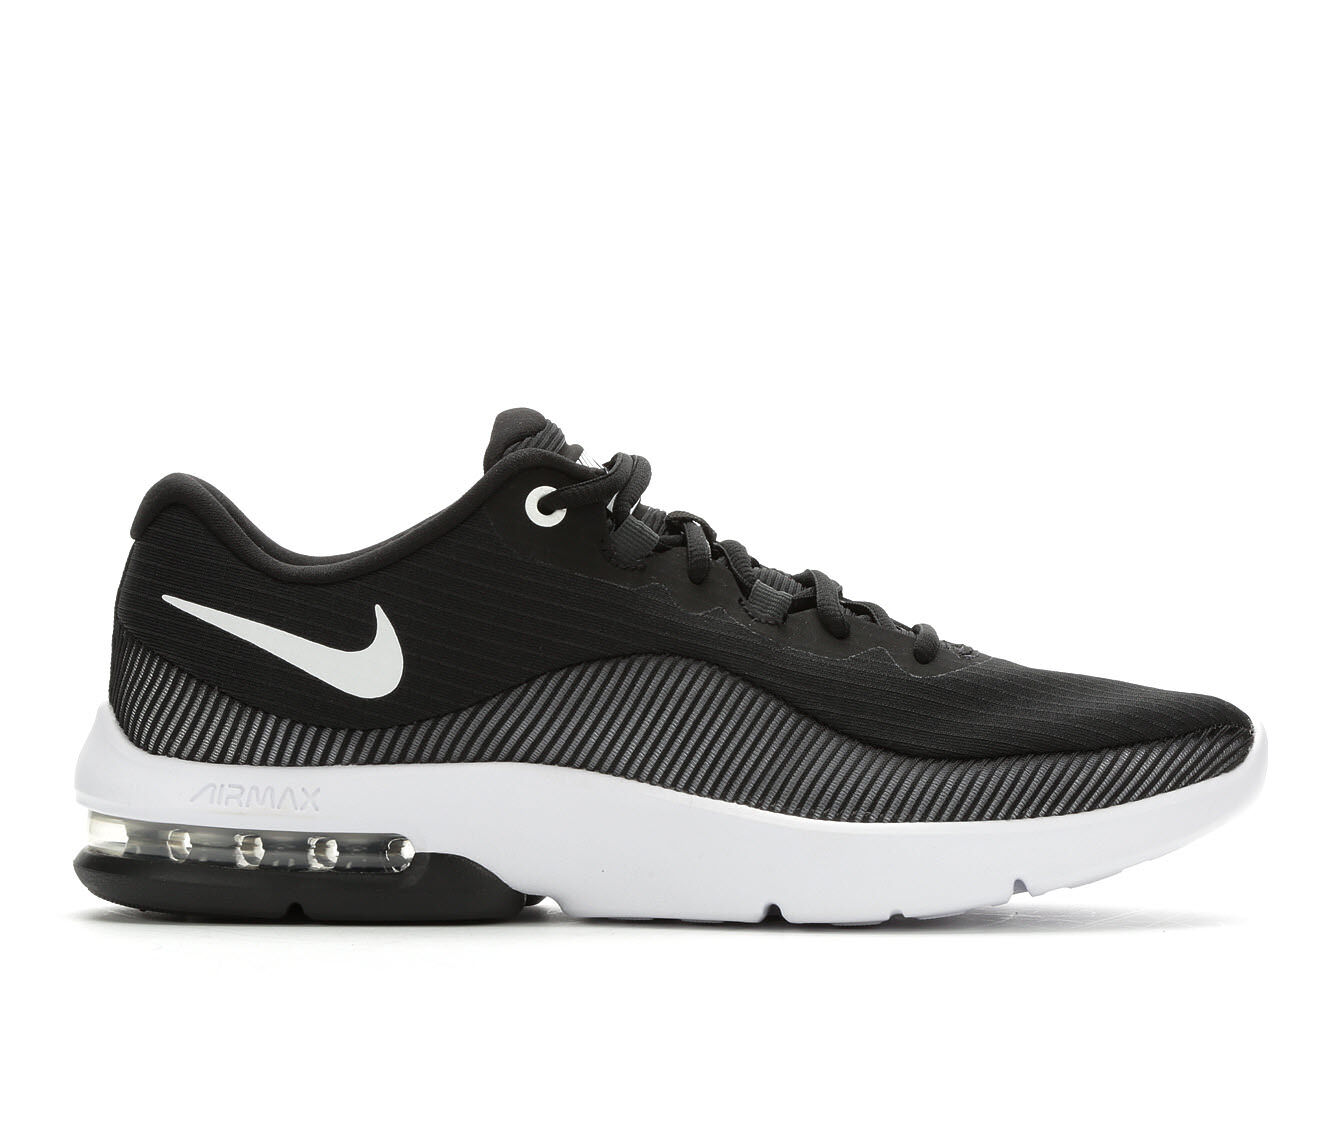 Authentic Store Men's Nike Air Max Advantage 2 Running Shoes Black/White